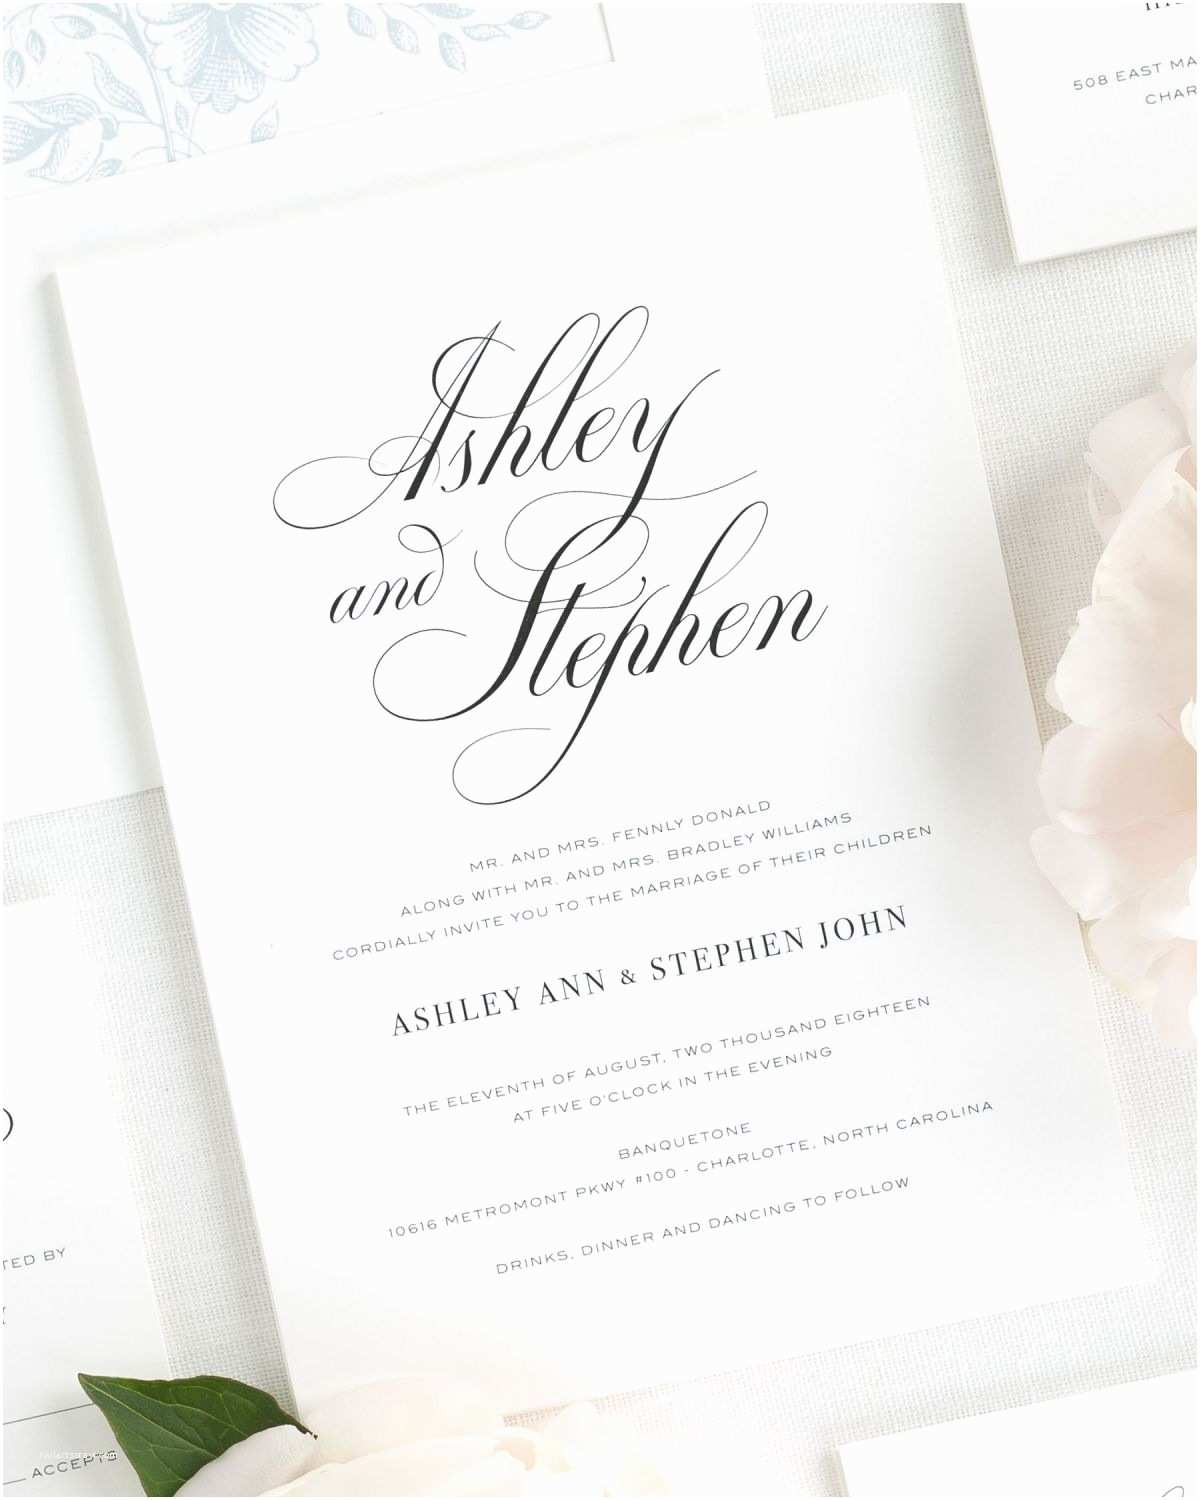 Invitation Calligraphy Timeless Calligraphy  Invitations